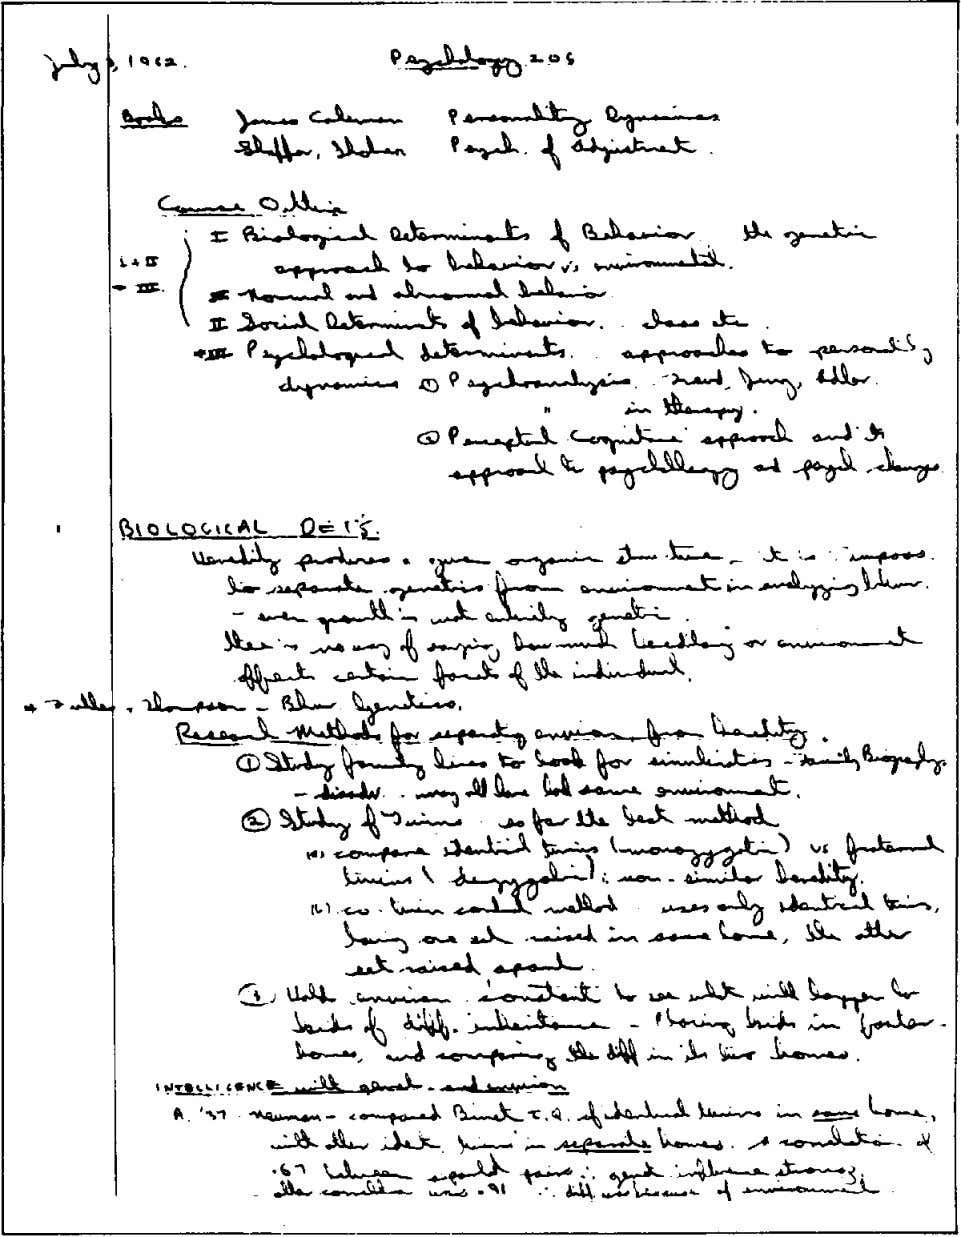 NOTING Fig 31 An example of traditionally 'good' university student's notes. See text on opposite page.